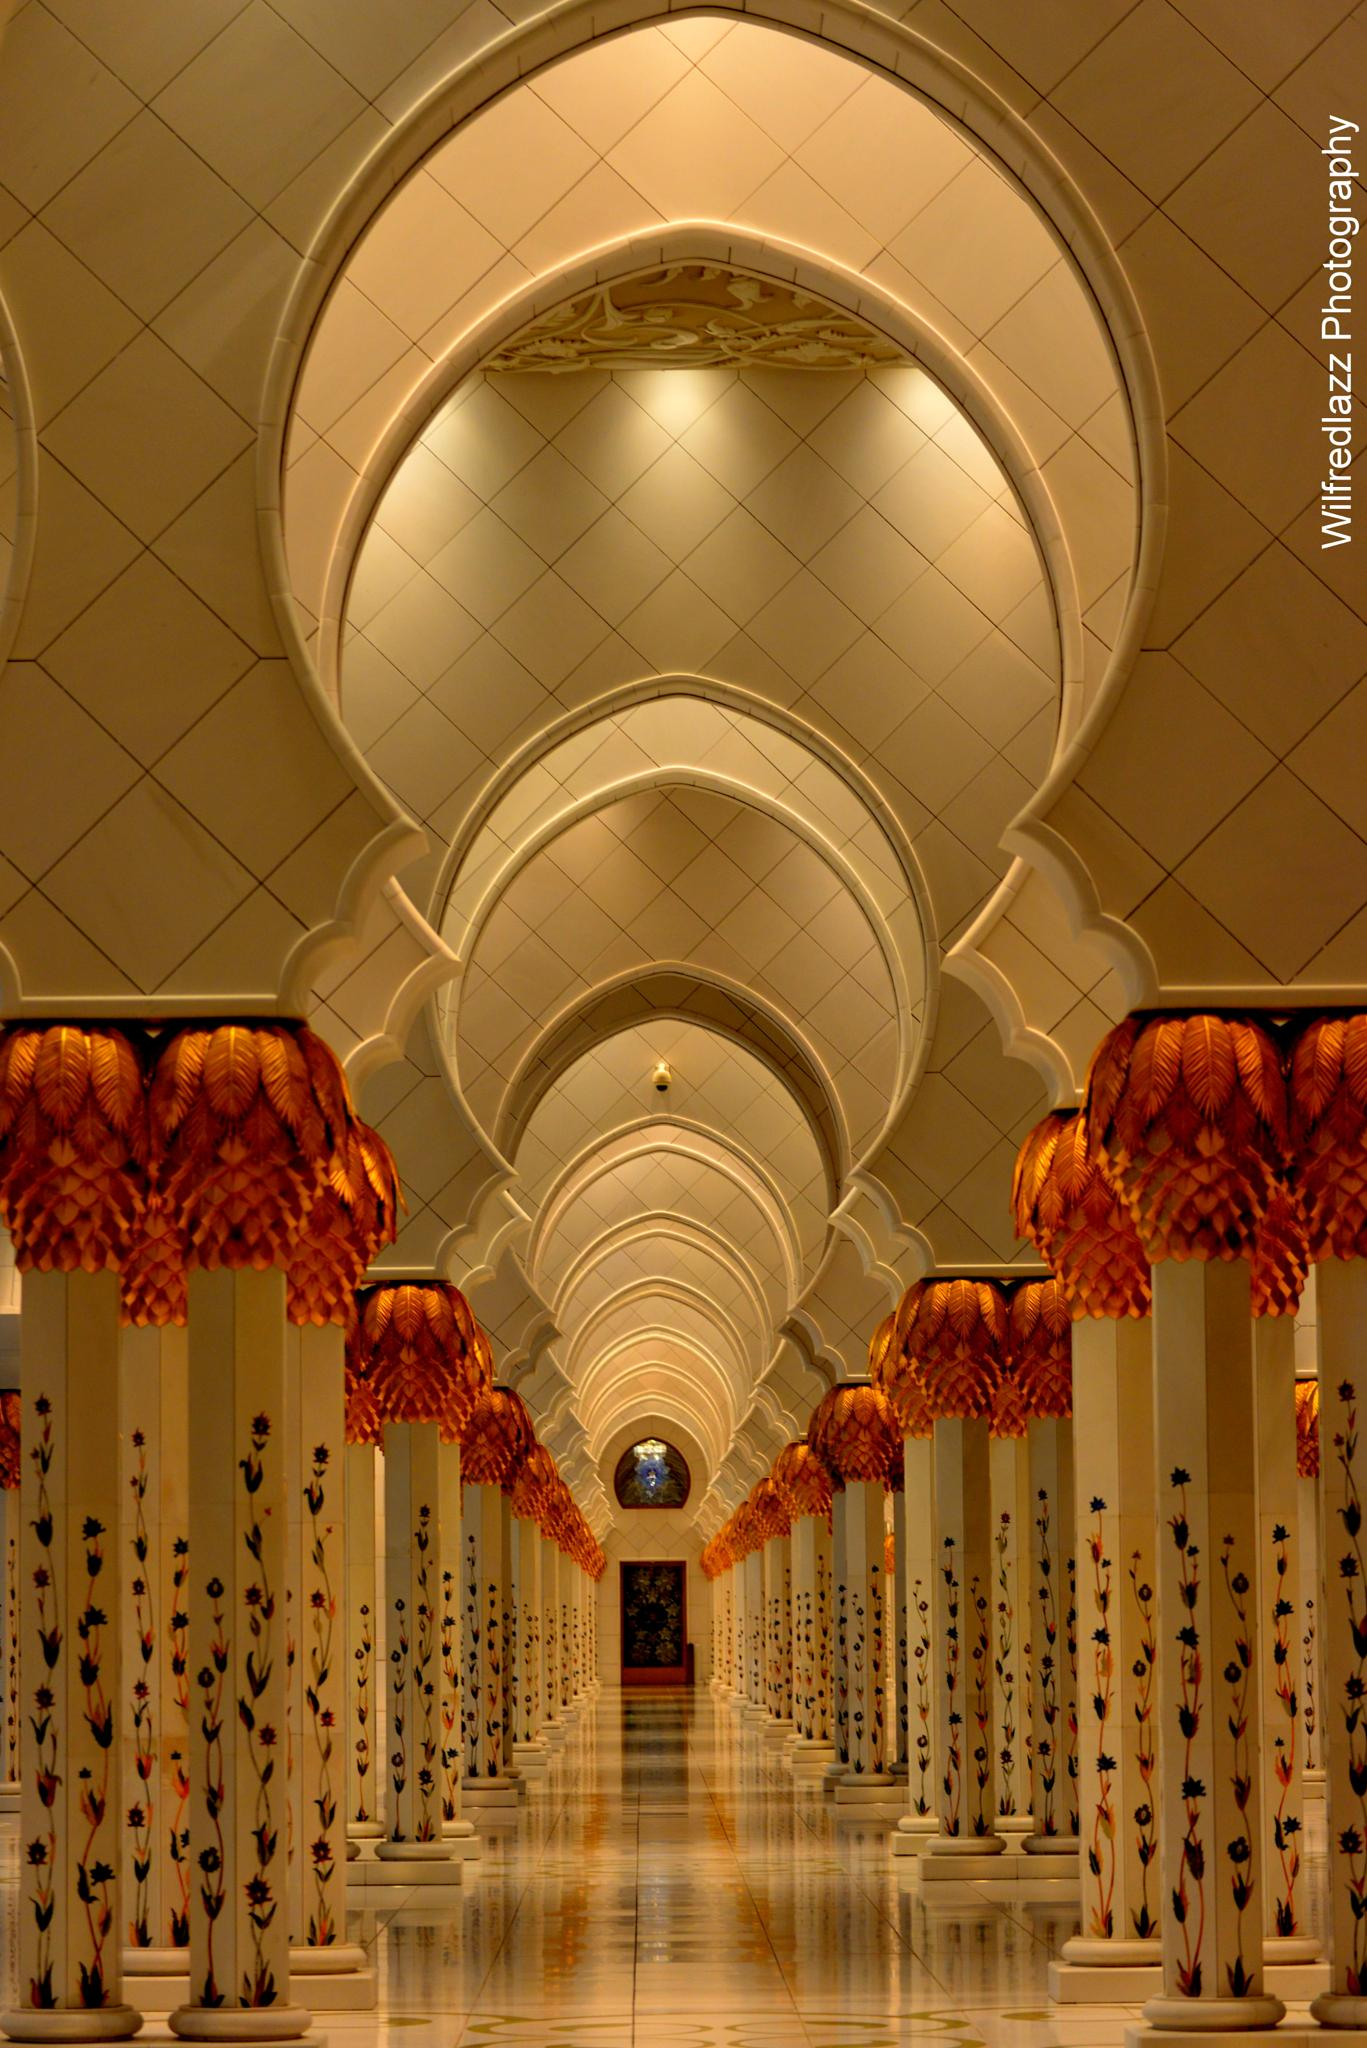 Sheikh Zayed Grand Mosque  by Wilfred Panakkal